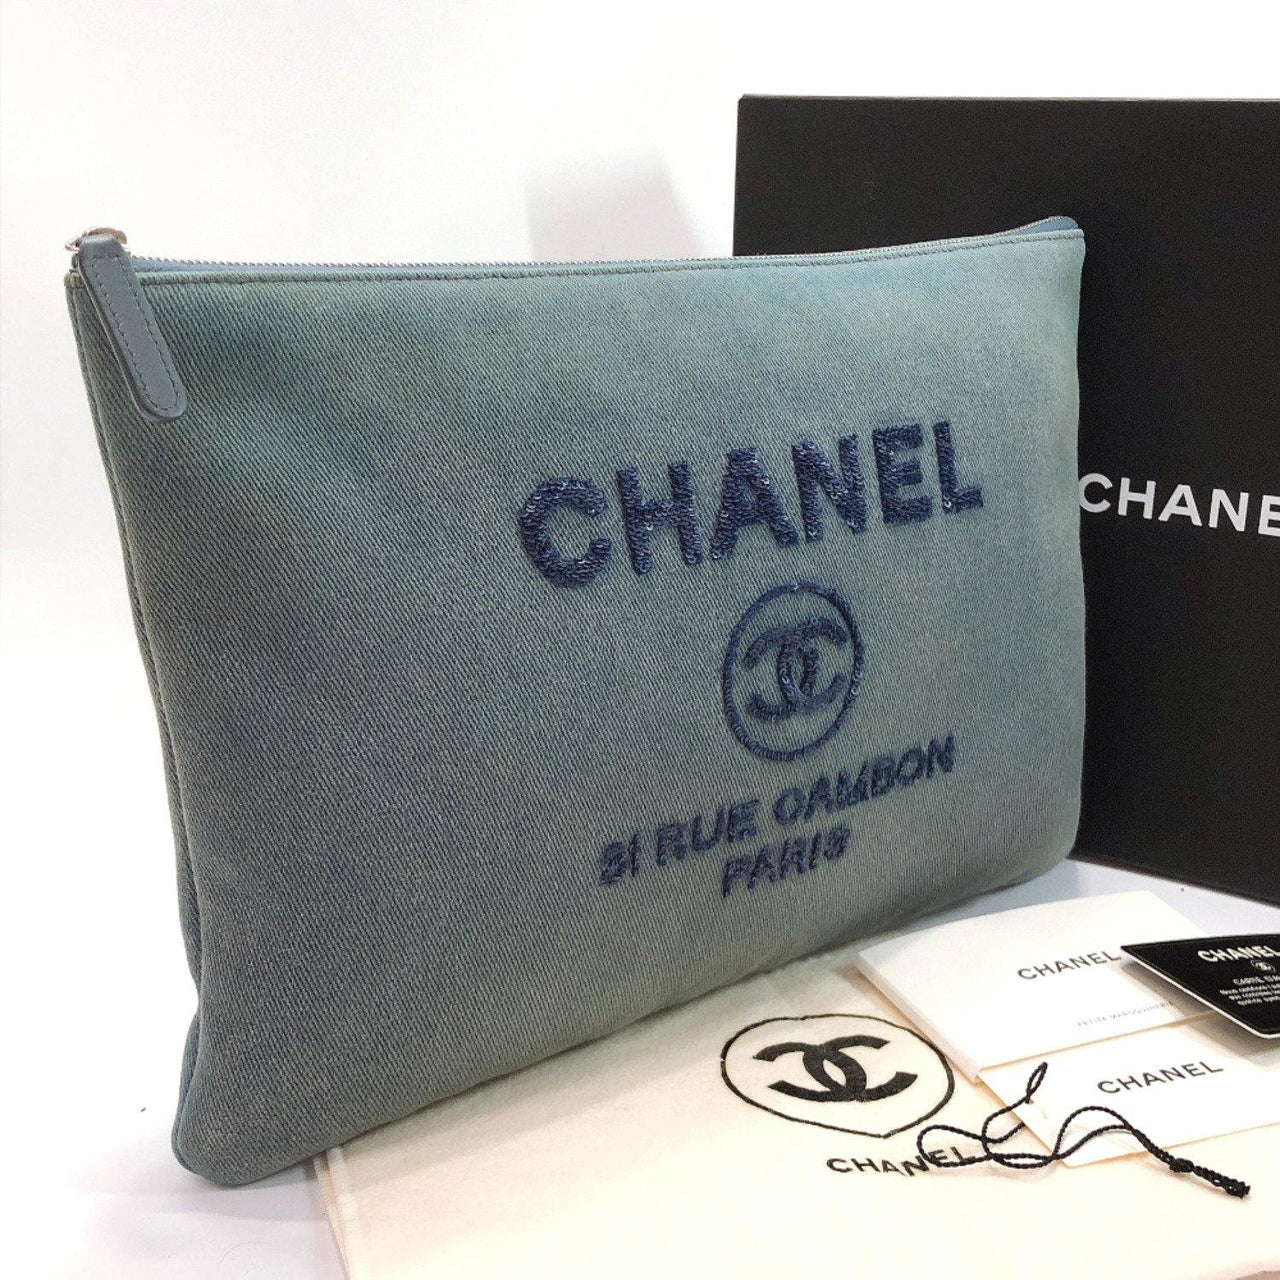 CHANEL Clutch bag A80117 Deauville Sequin denim blue Women Used